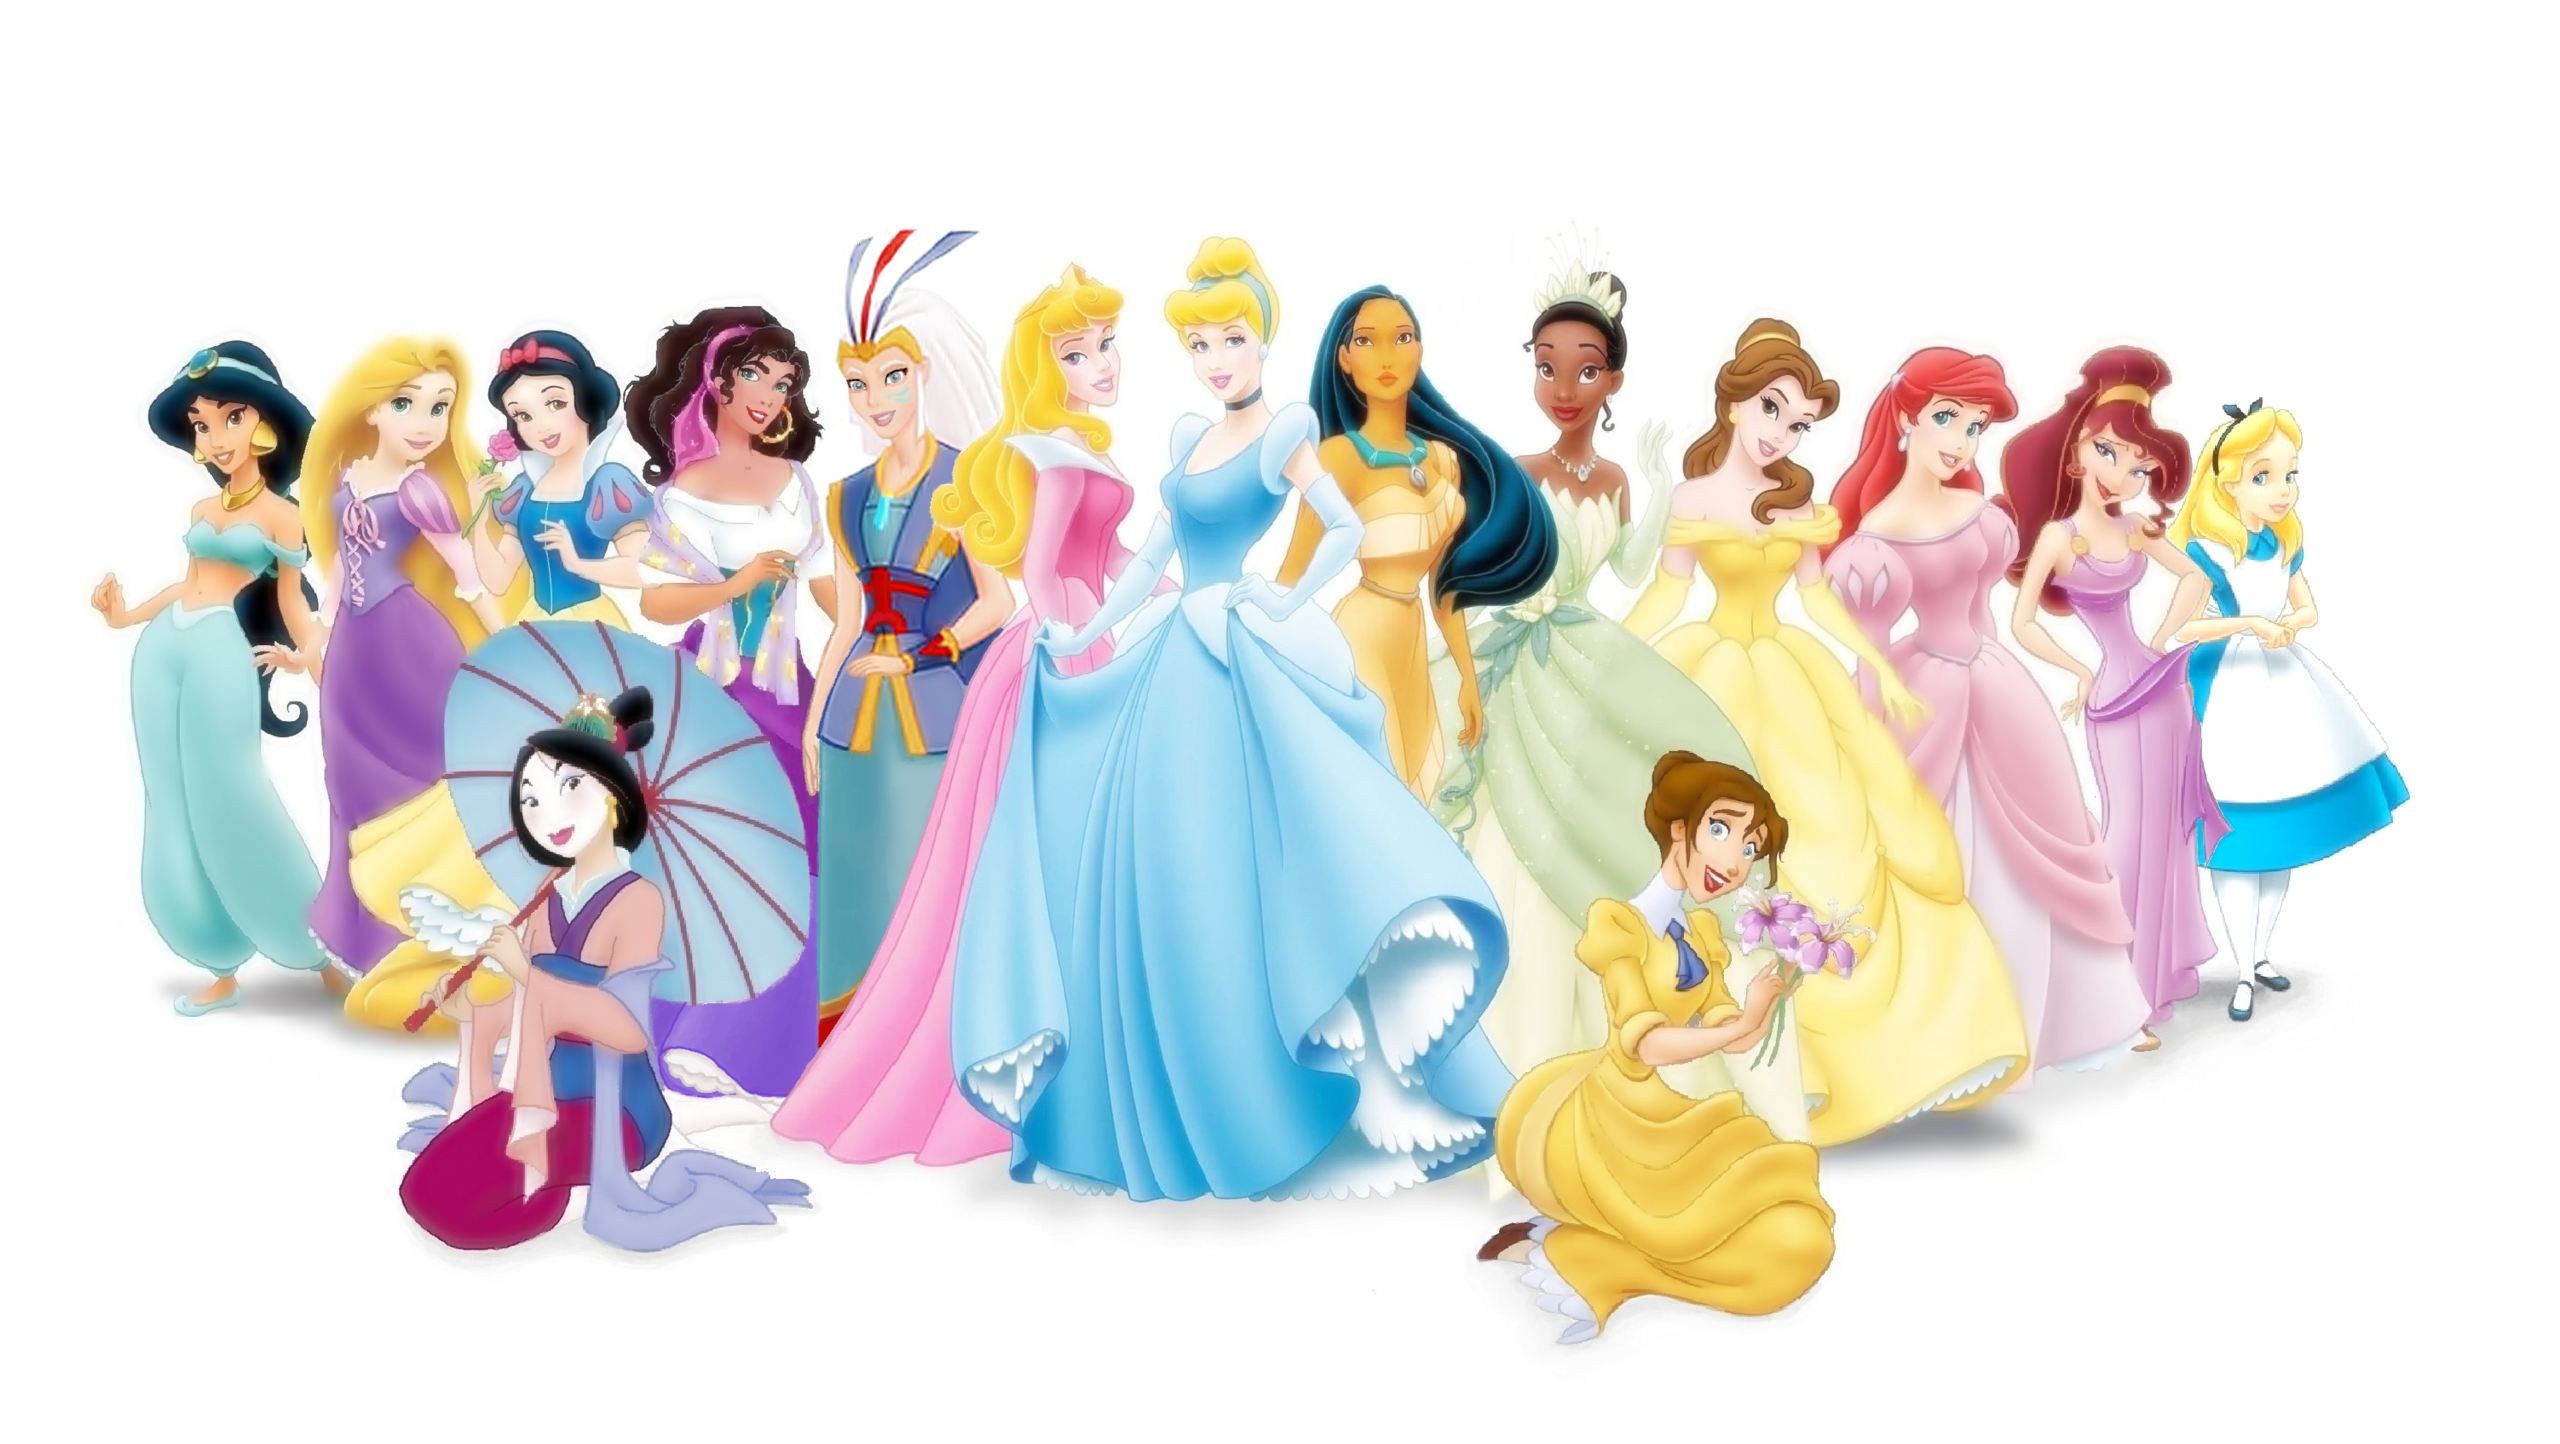 disney princess images all disney princess hd wallpaper and